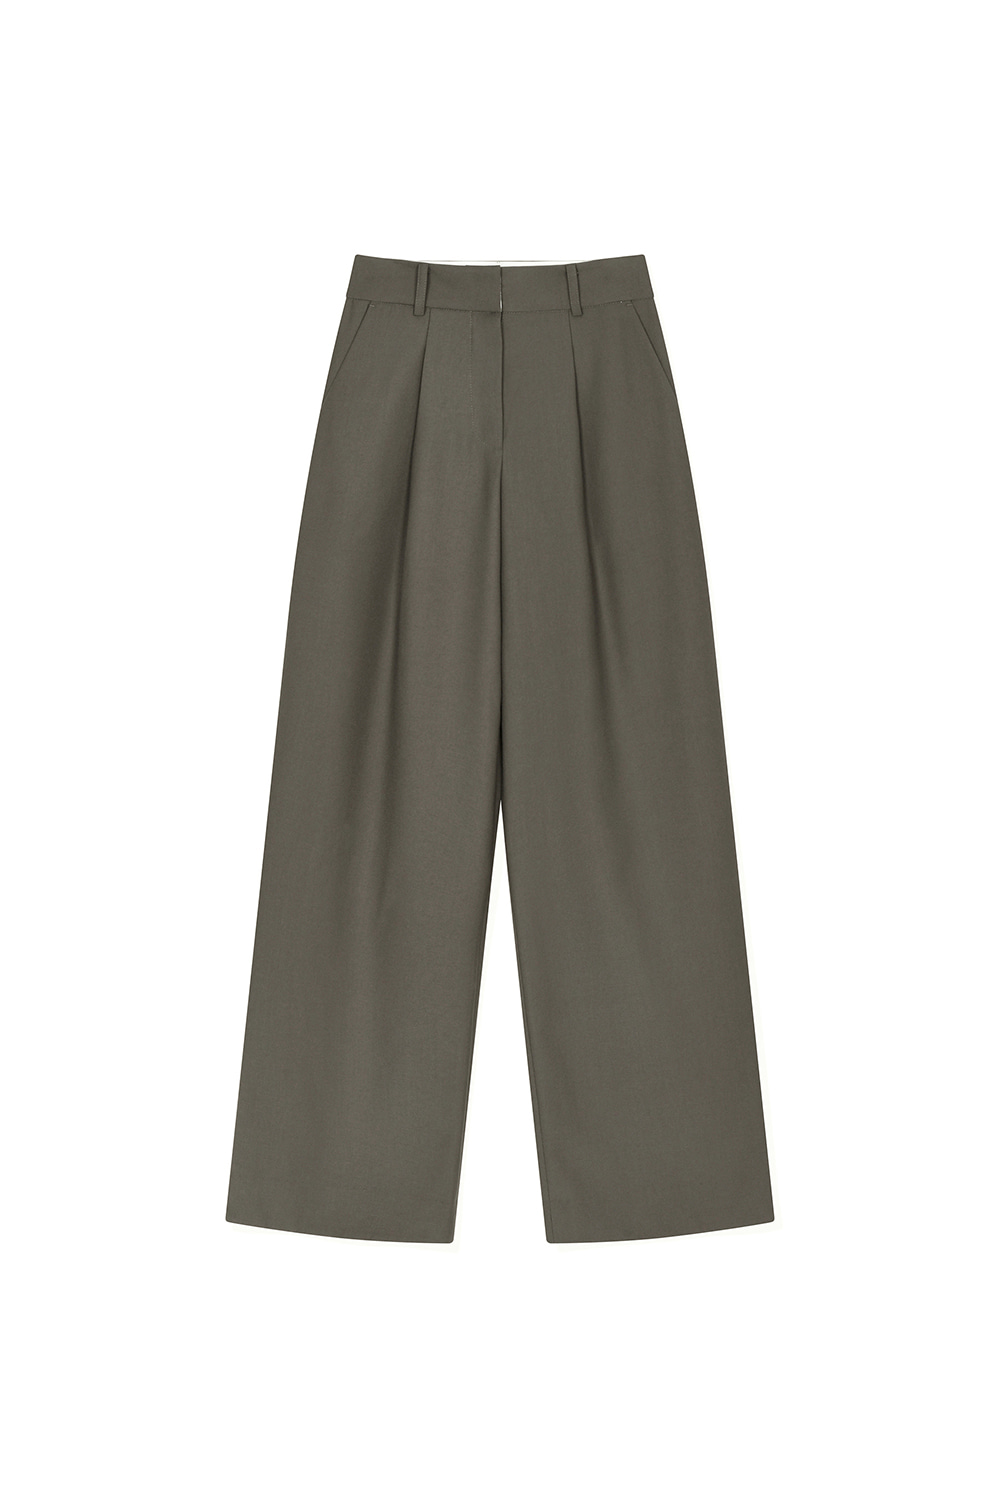 Over Pants Women JA [Taupe] -10%